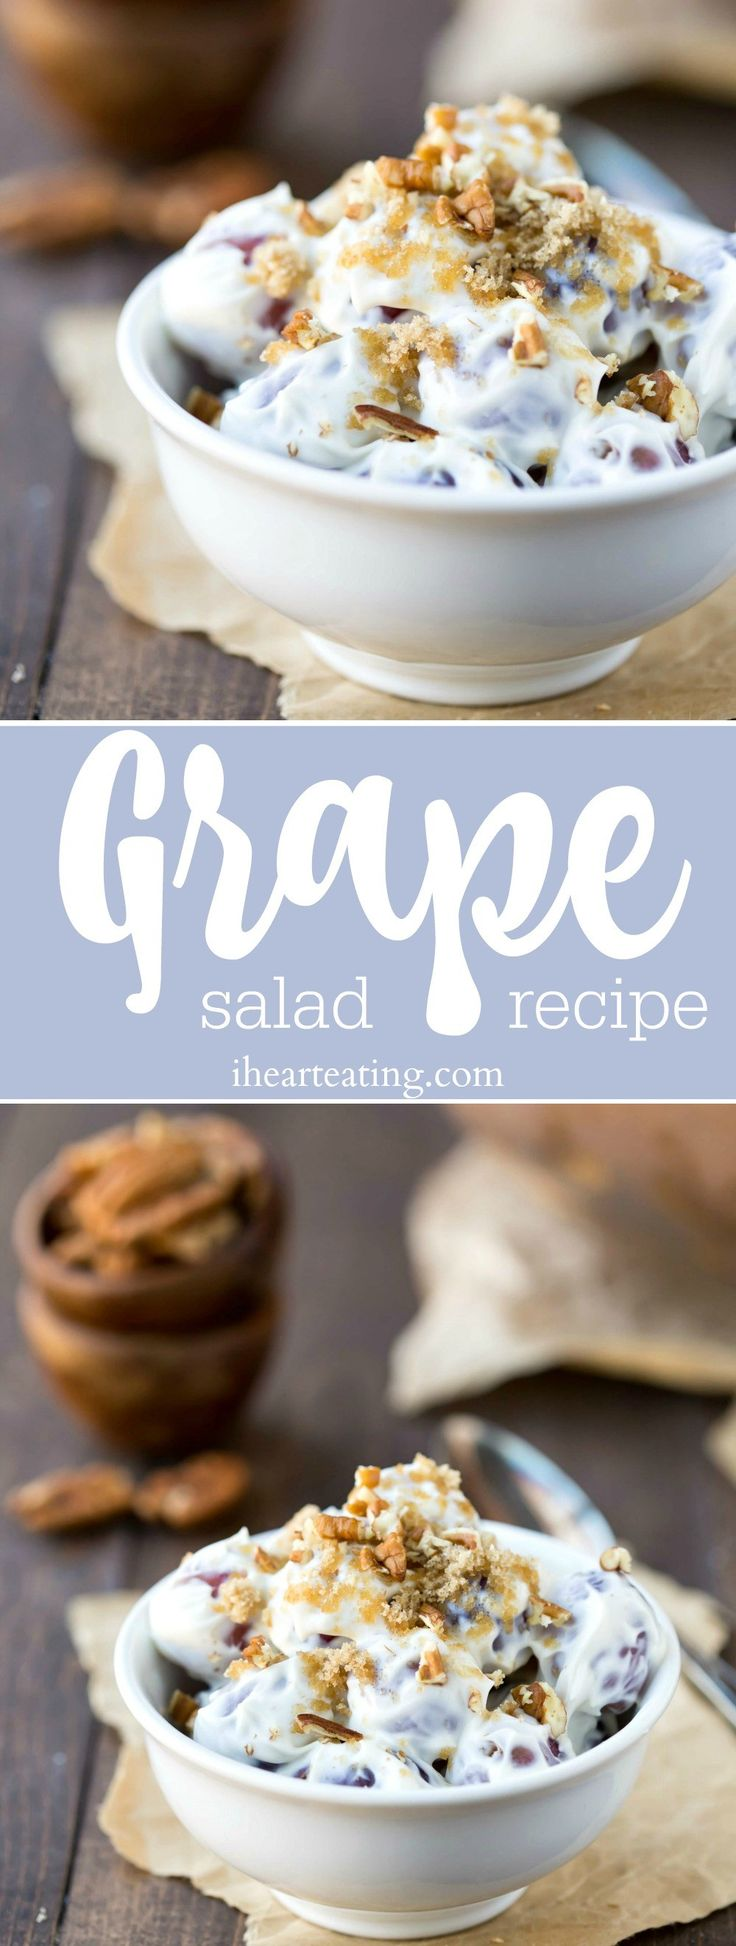 Grape Salad Recipe - simple healthy dessert or side salad recipe that is made with healthy ingredients.